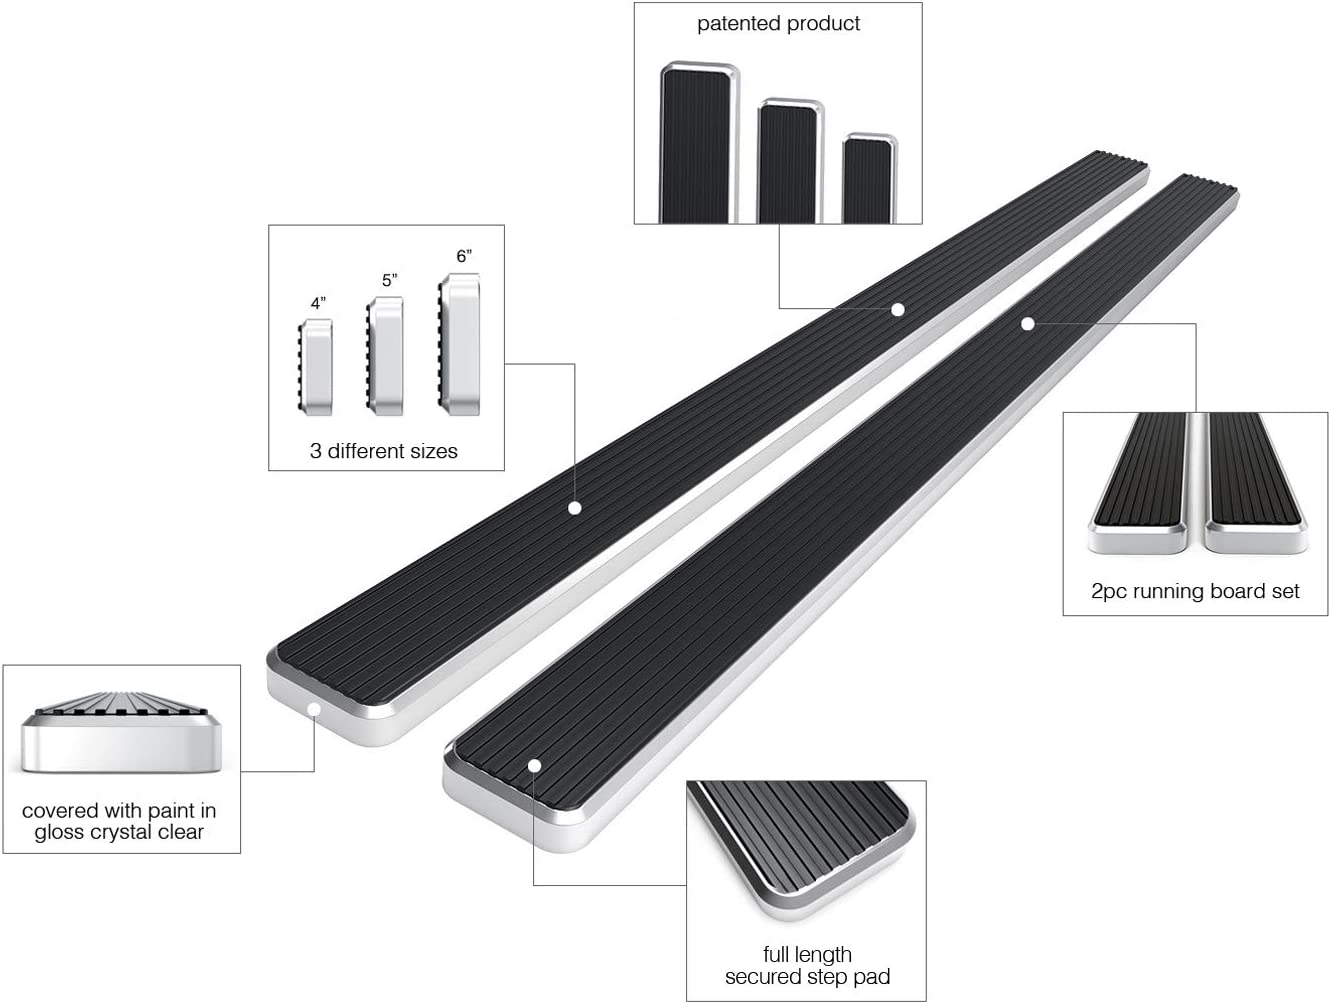 iBoard Running Boards Review - Durability at an Affordable Price 3